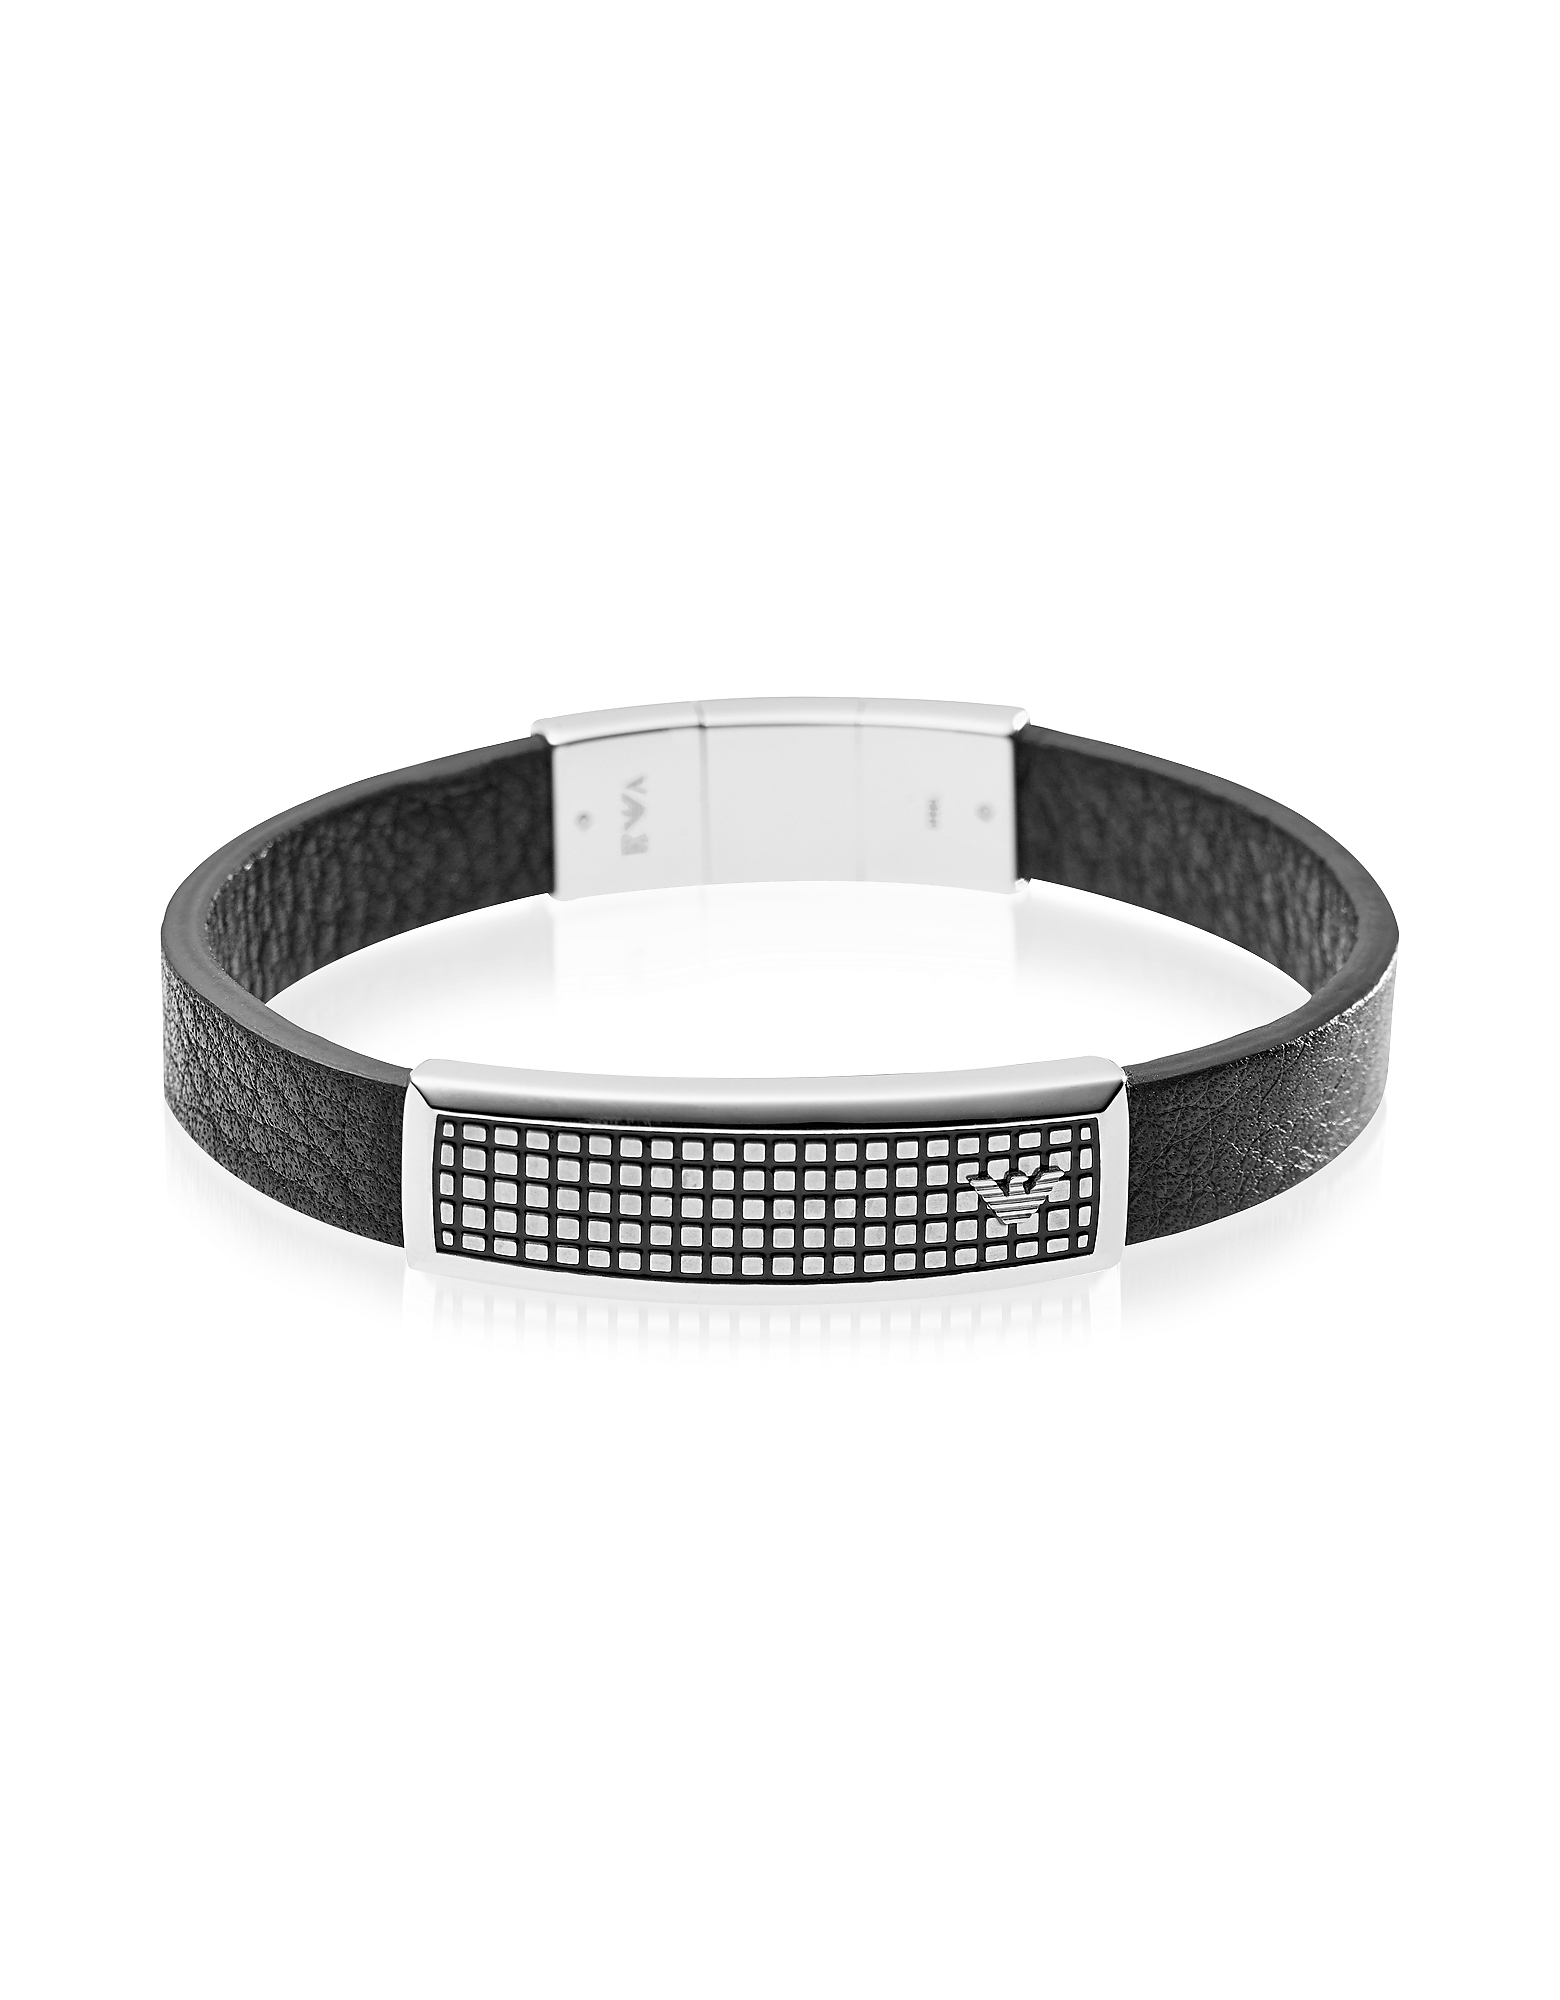 Iconic Stainless Steel And Rubber Men's Bracelet от Forzieri.com INT